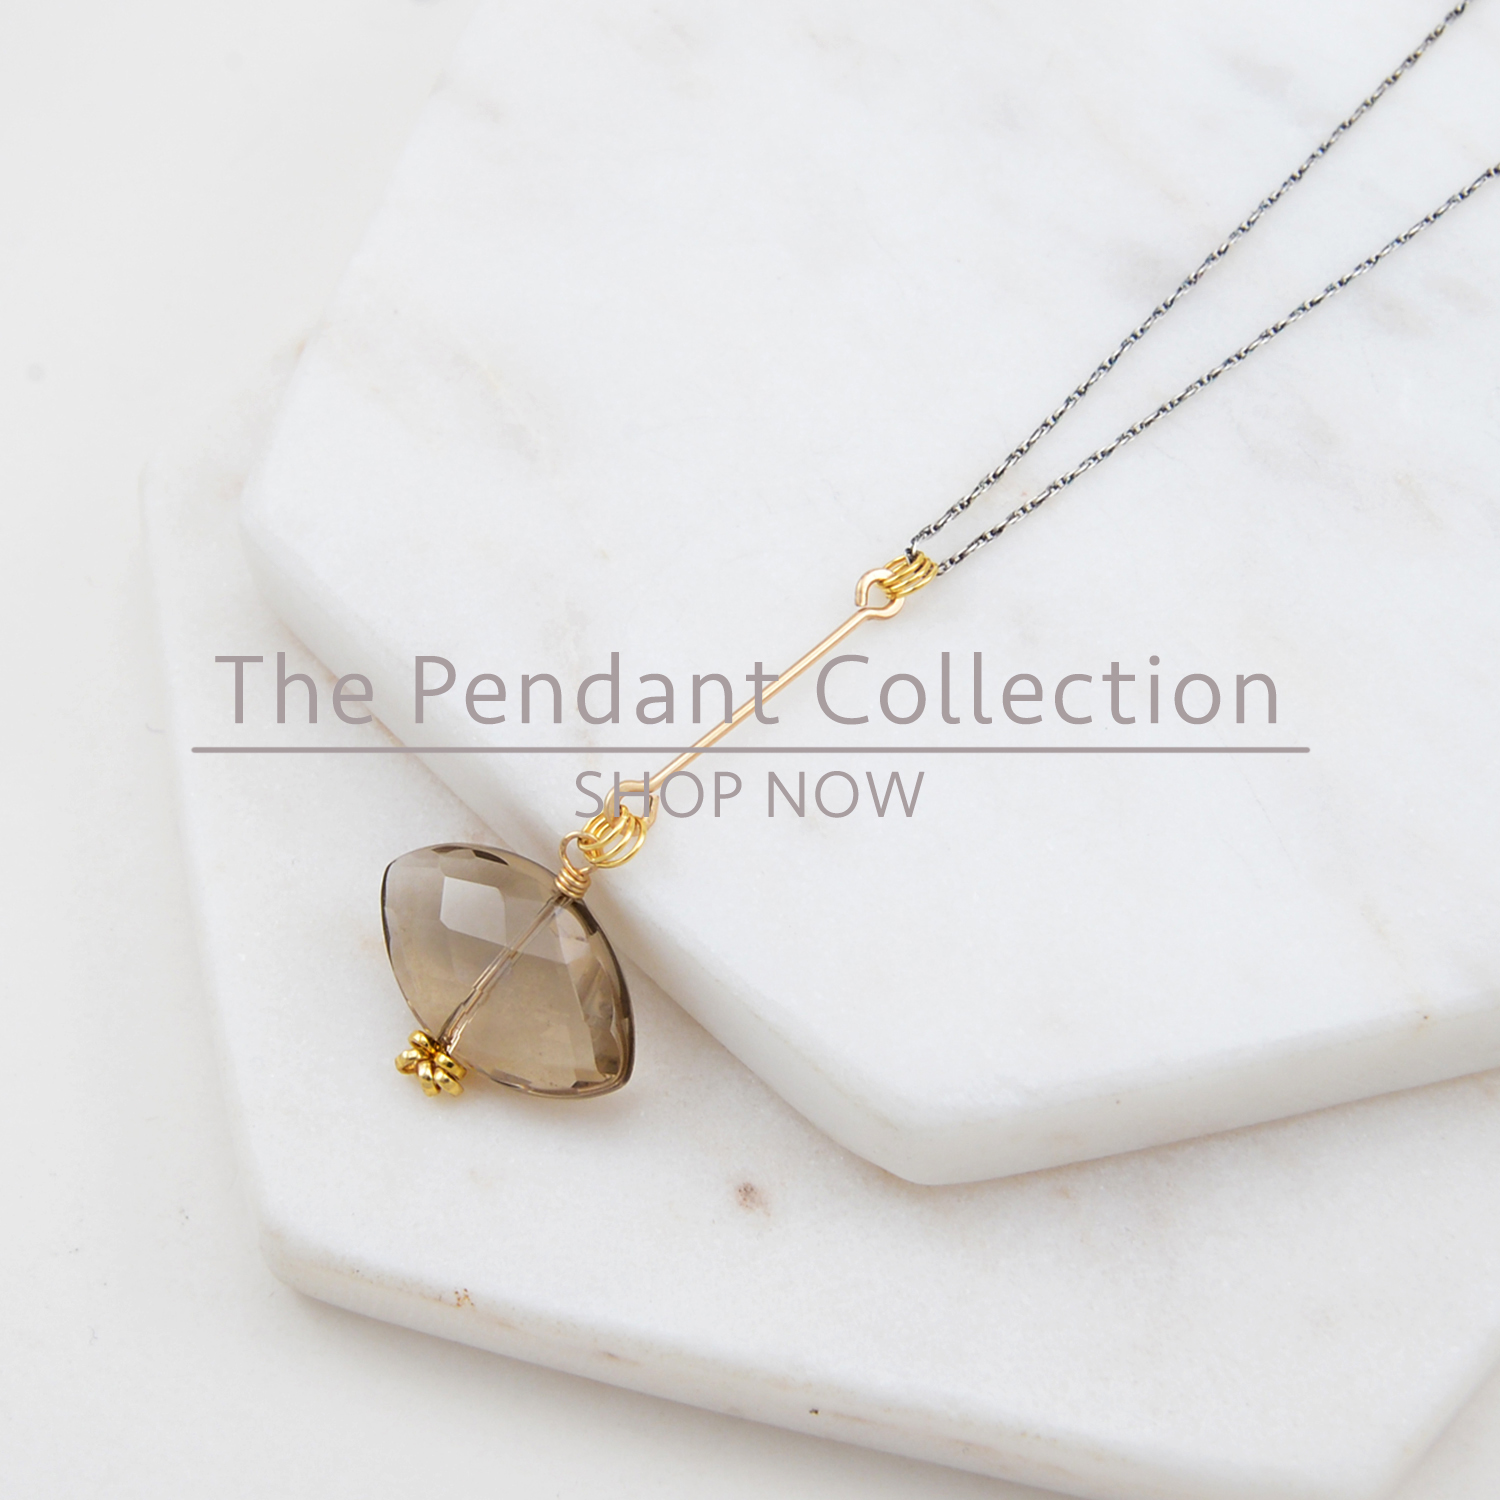 pendantcollection.jpg